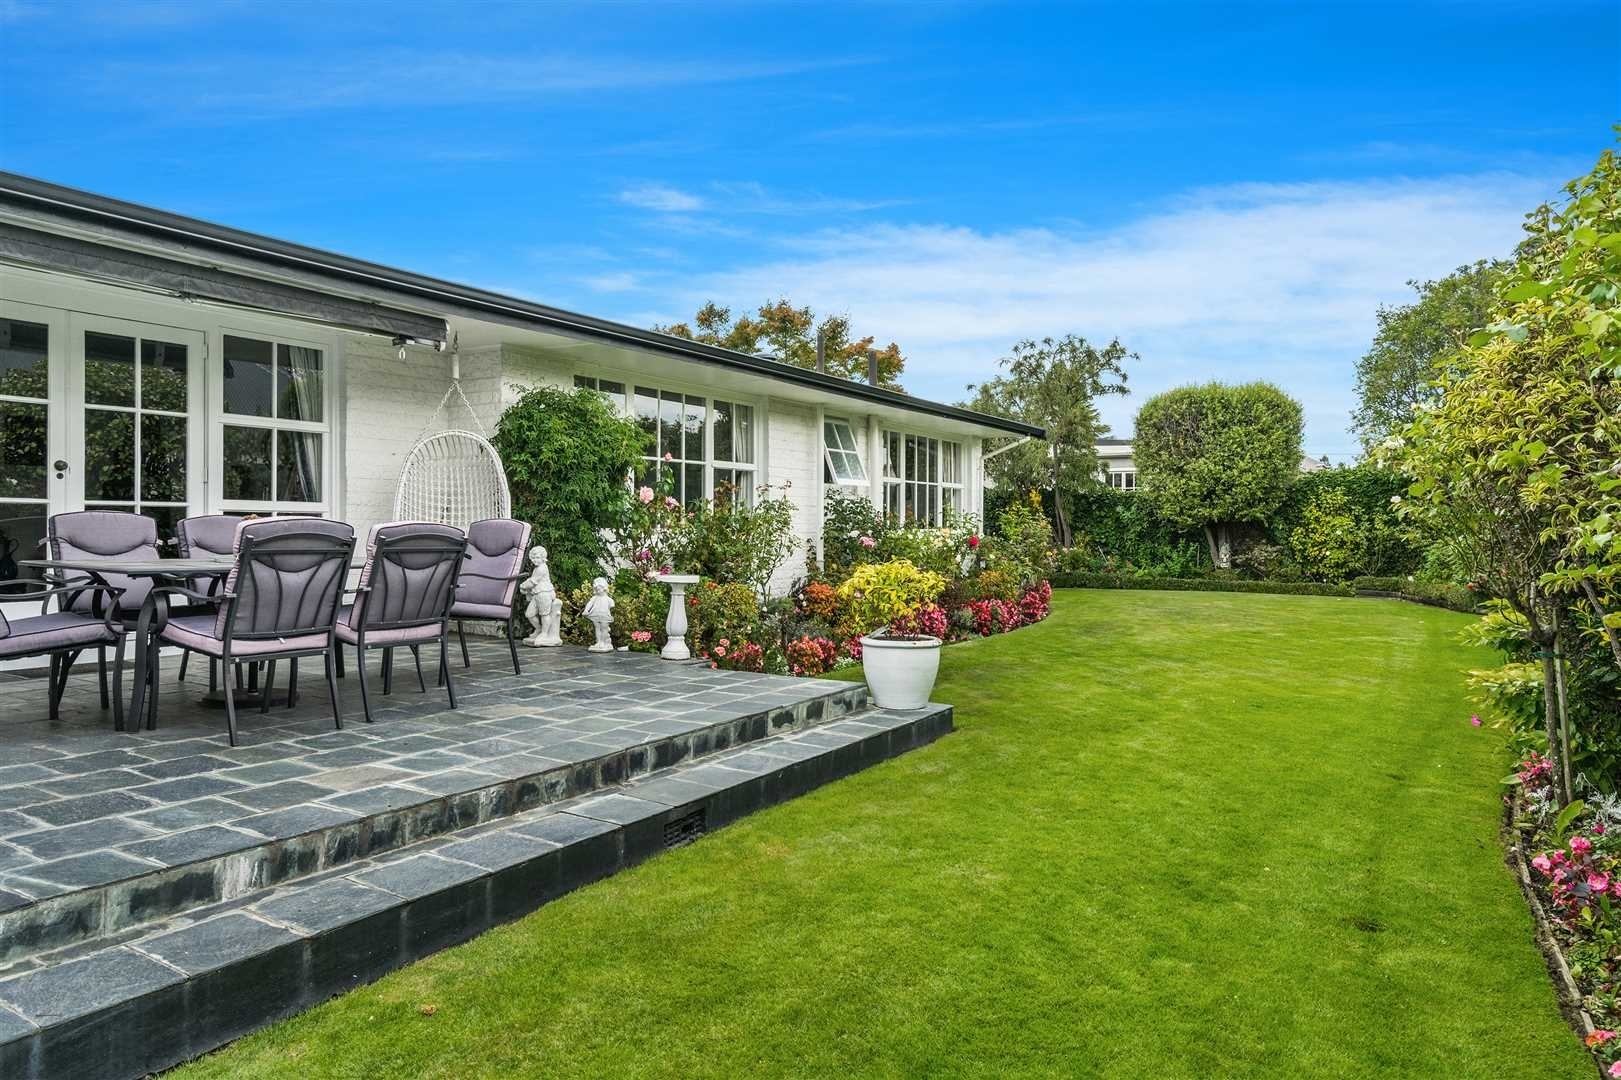 Fendalton, 7A Roa Road | Harcourts Ilam 2 | Harcourts intended for Fendalton School House And Garden Tour